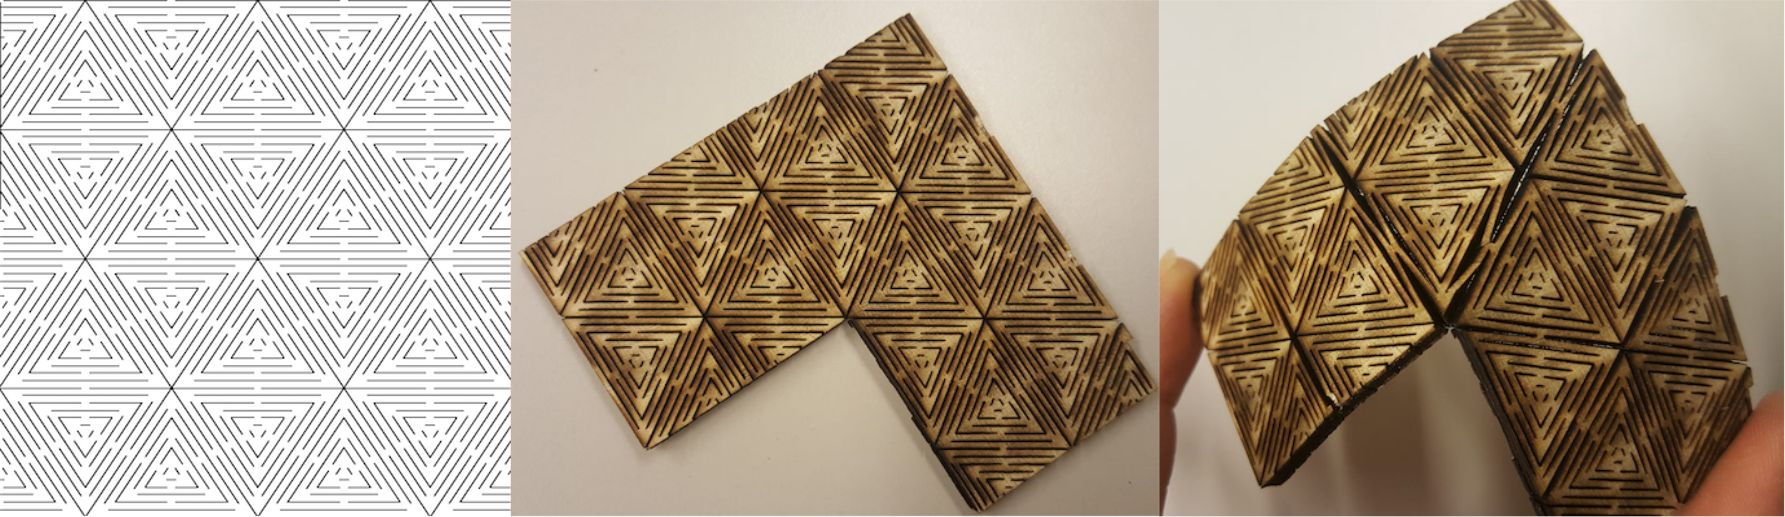 Geodesic Pattern Living Hinge Template for Laser Cut DXF File Free